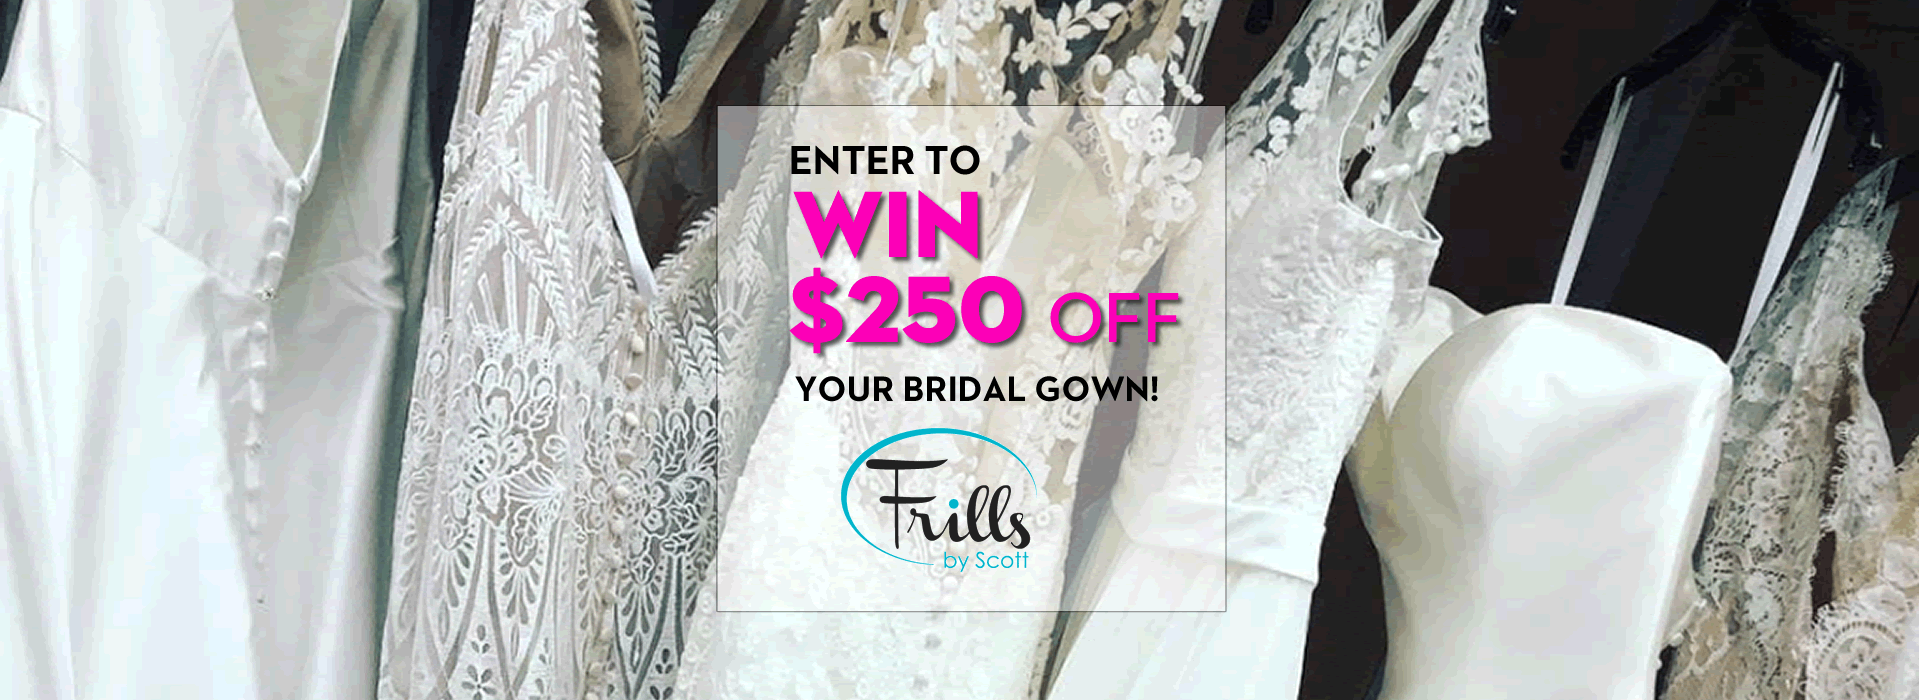 Enter to Win $250 OFF Your Bridal Gown!